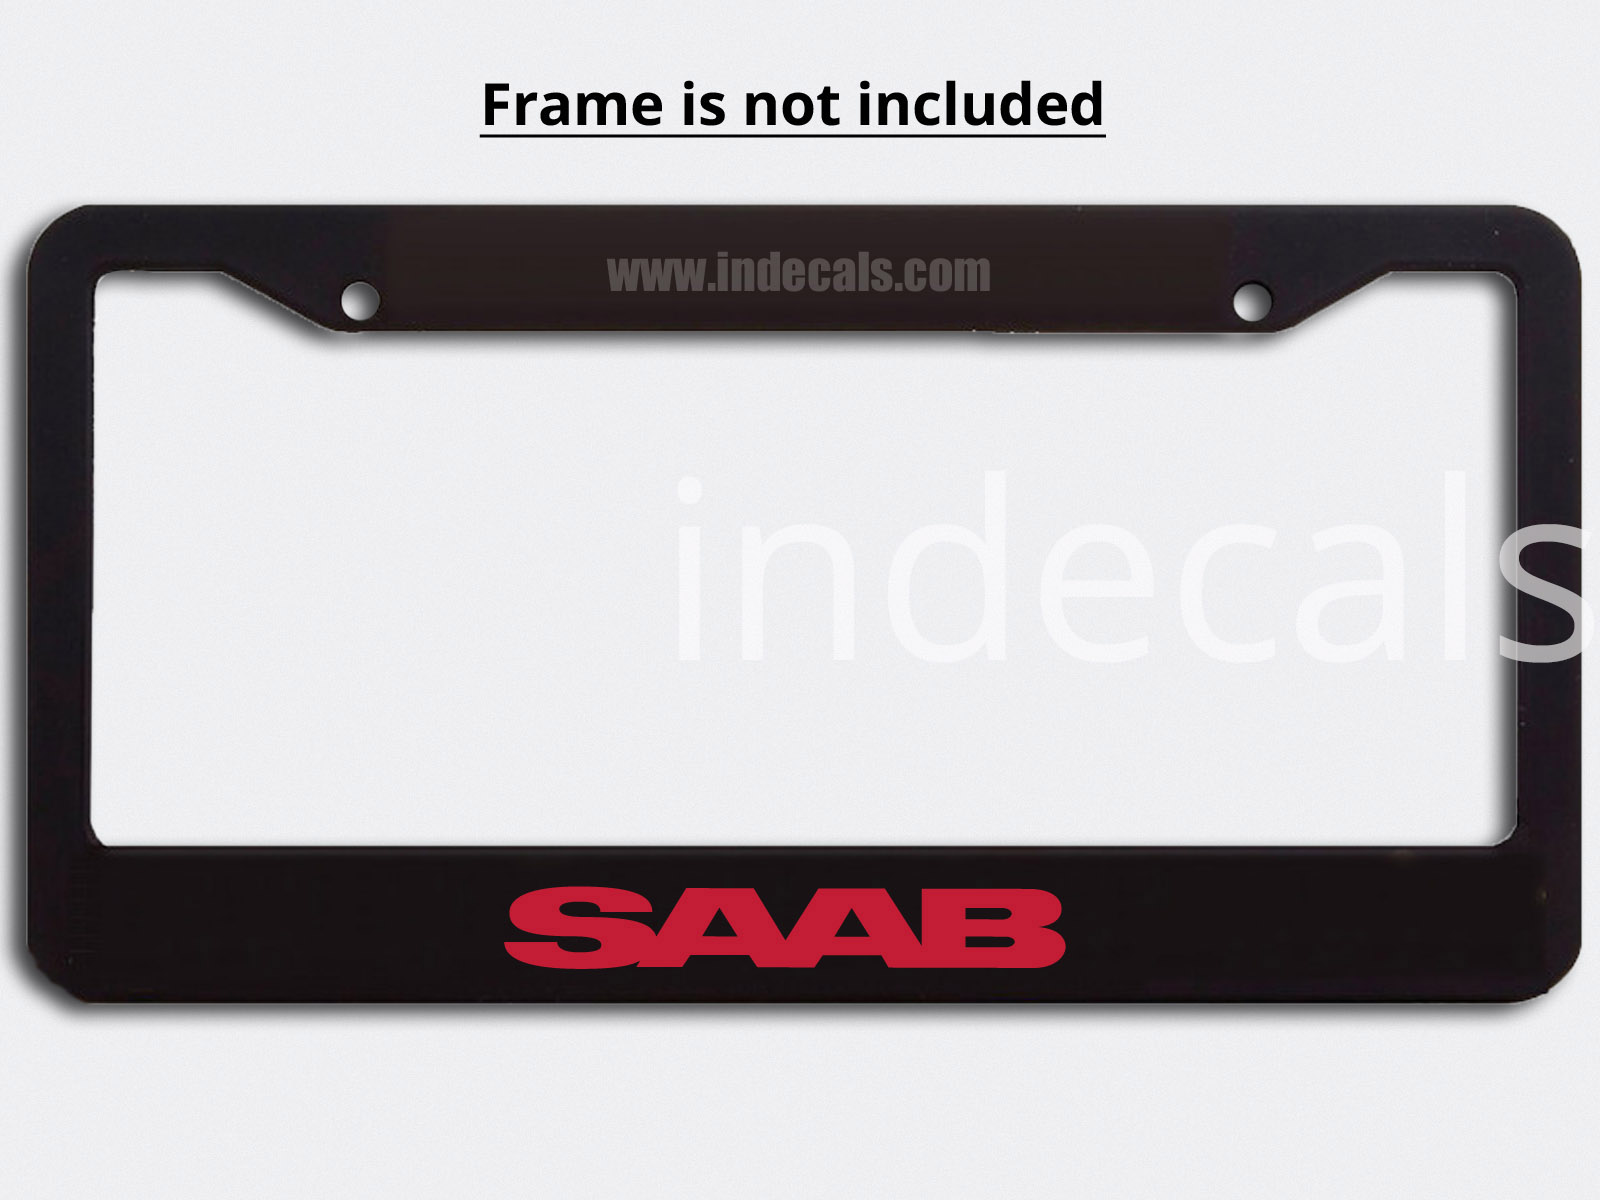 3 x Saab Stickers for Plate Frame - Red